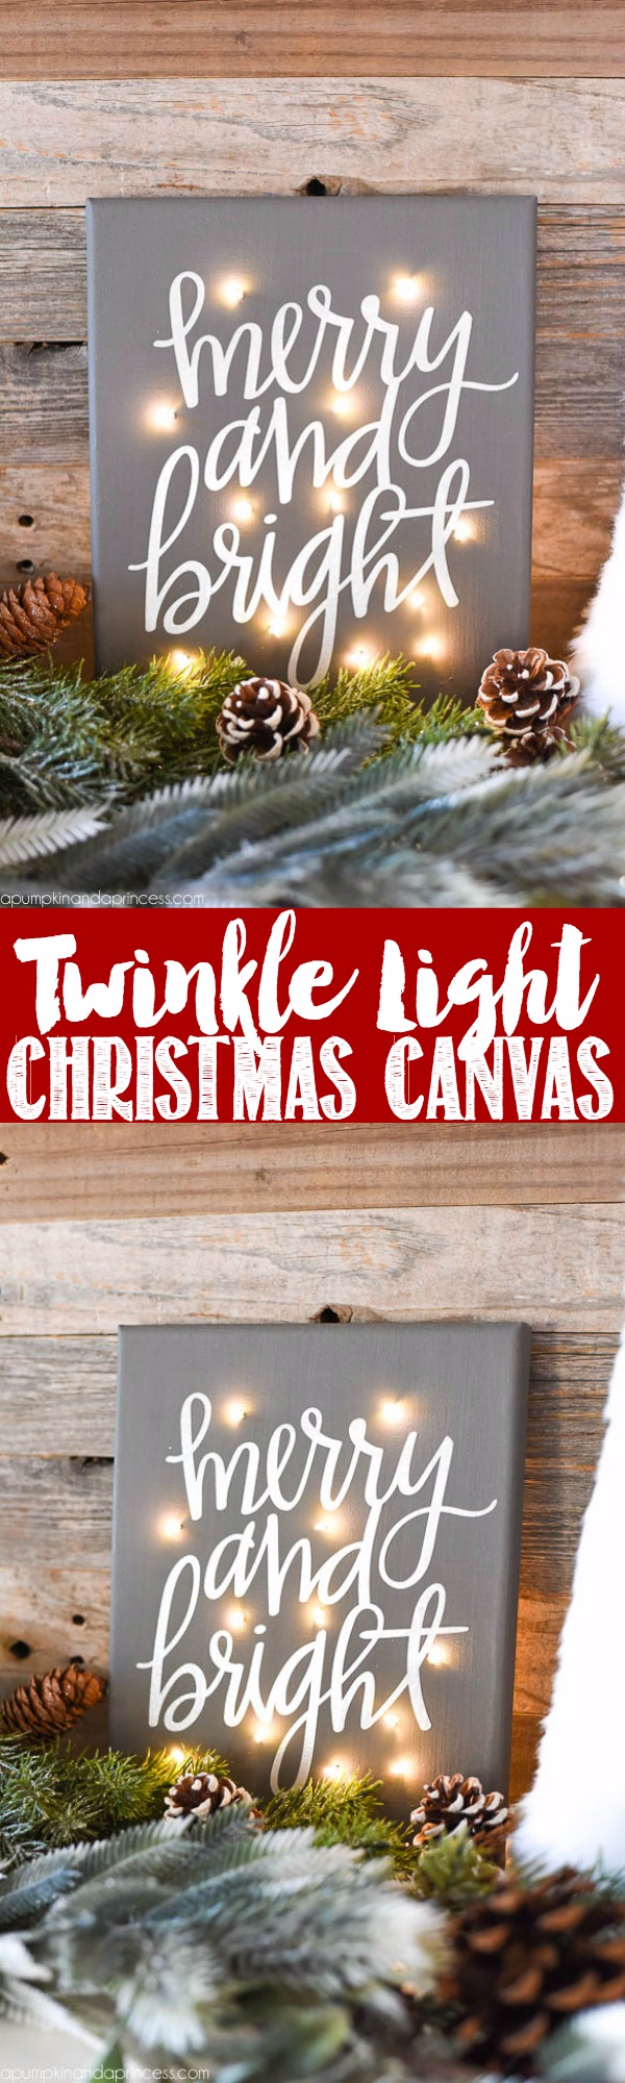 Cool Ways To Use Christmas Lights - DIY Twinkle Light Christmas Canvas - Best Easy DIY Ideas for String Lights for Room Decoration, Home Decor and Creative DIY Bedroom Lighting #diy #christmas #homedecor